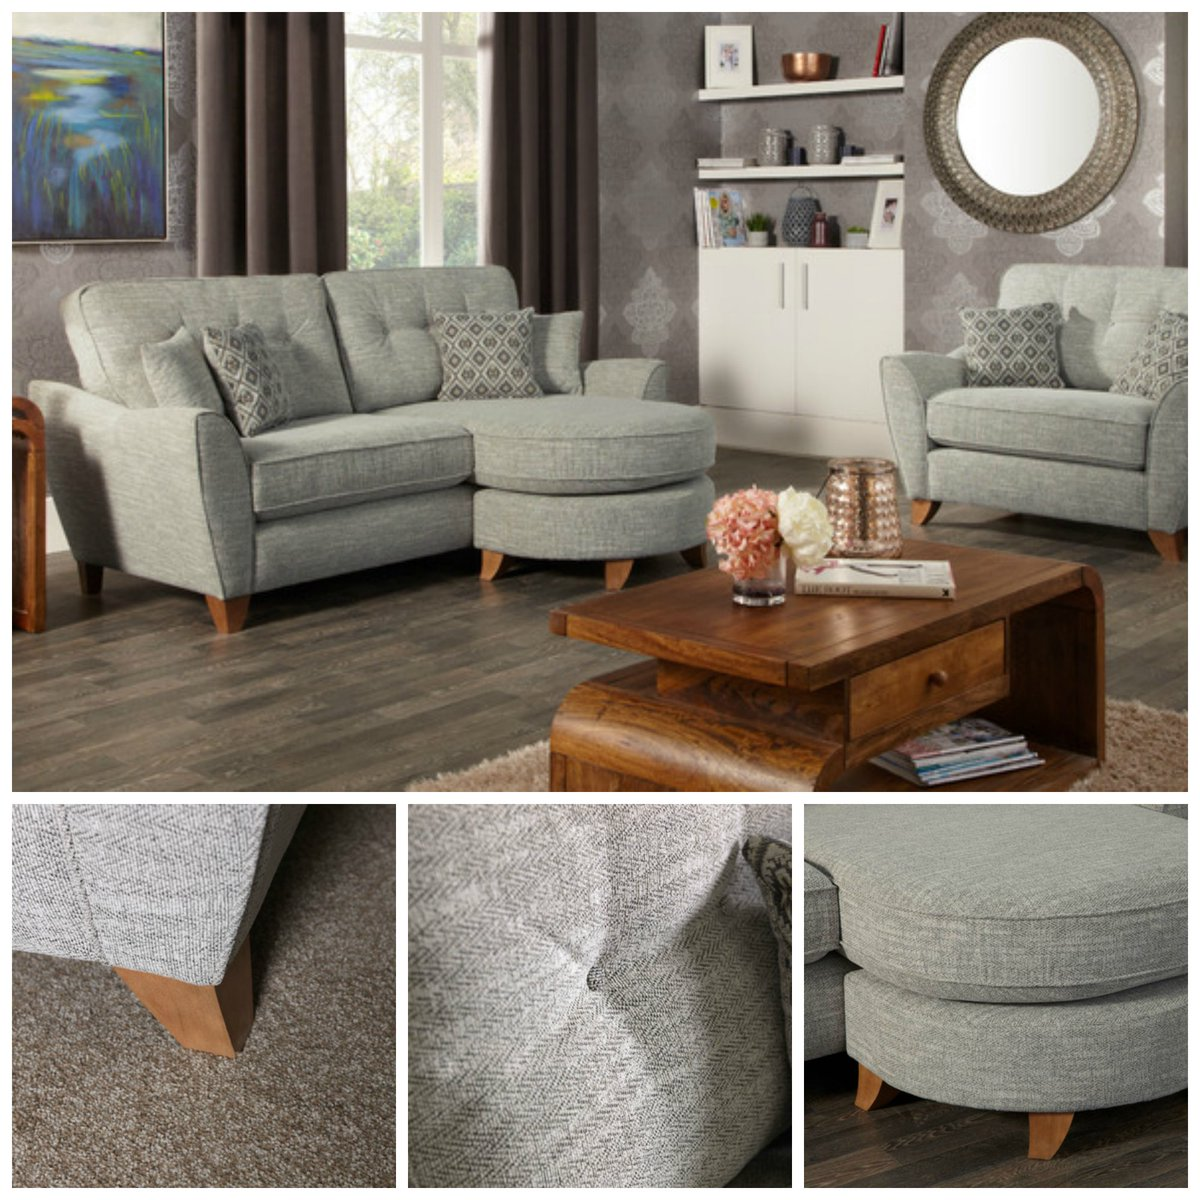 Scs Sofas On Twitter This Ava Chaise Standard Back Sofa Is Madeinbritain And Now Better Than Half Price Only 389 Https T Co Tlk3yvrcu2